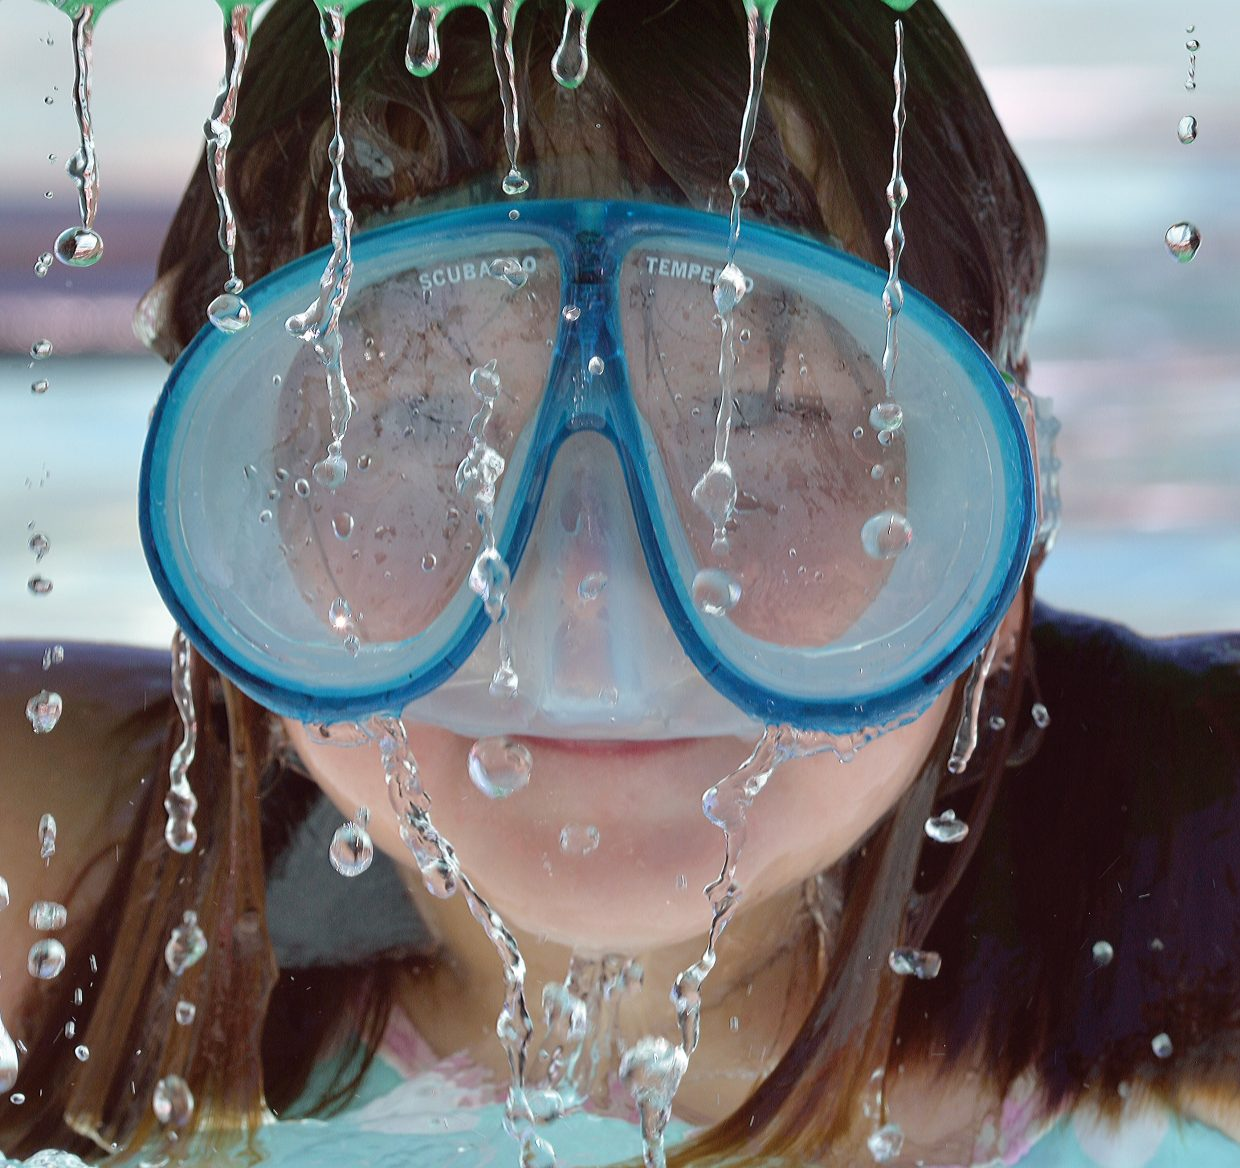 Eight-year-old Madison Acker plays at the Old Town Hot Springs pool Monday afternoon while visiting Steamboat Springs from Brighton, Colorado.